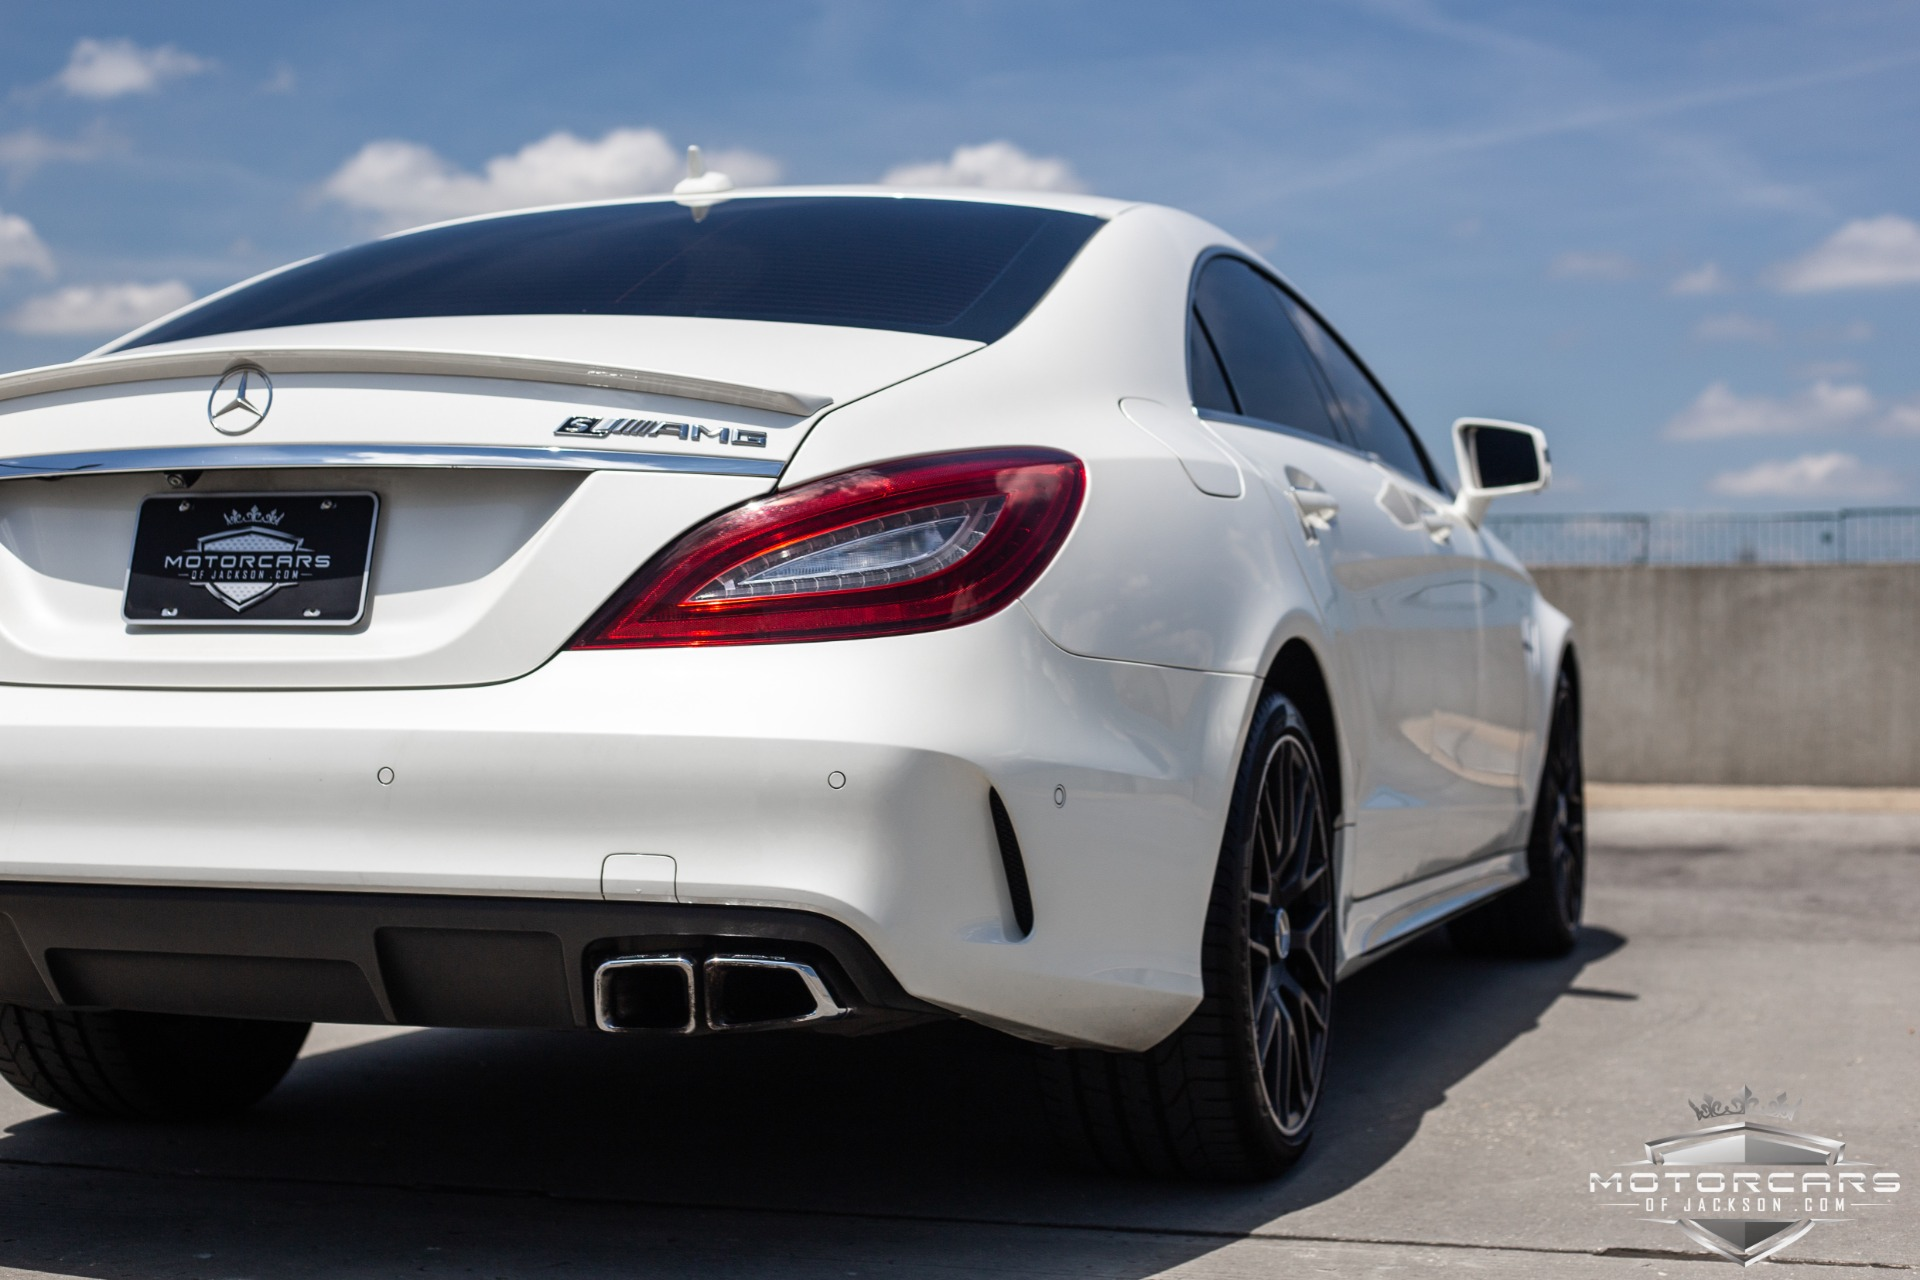 Used-2015-Mercedes-Benz-CLS-Class-CLS-63-AMG-S-Model-Renntech-Jackson-MS